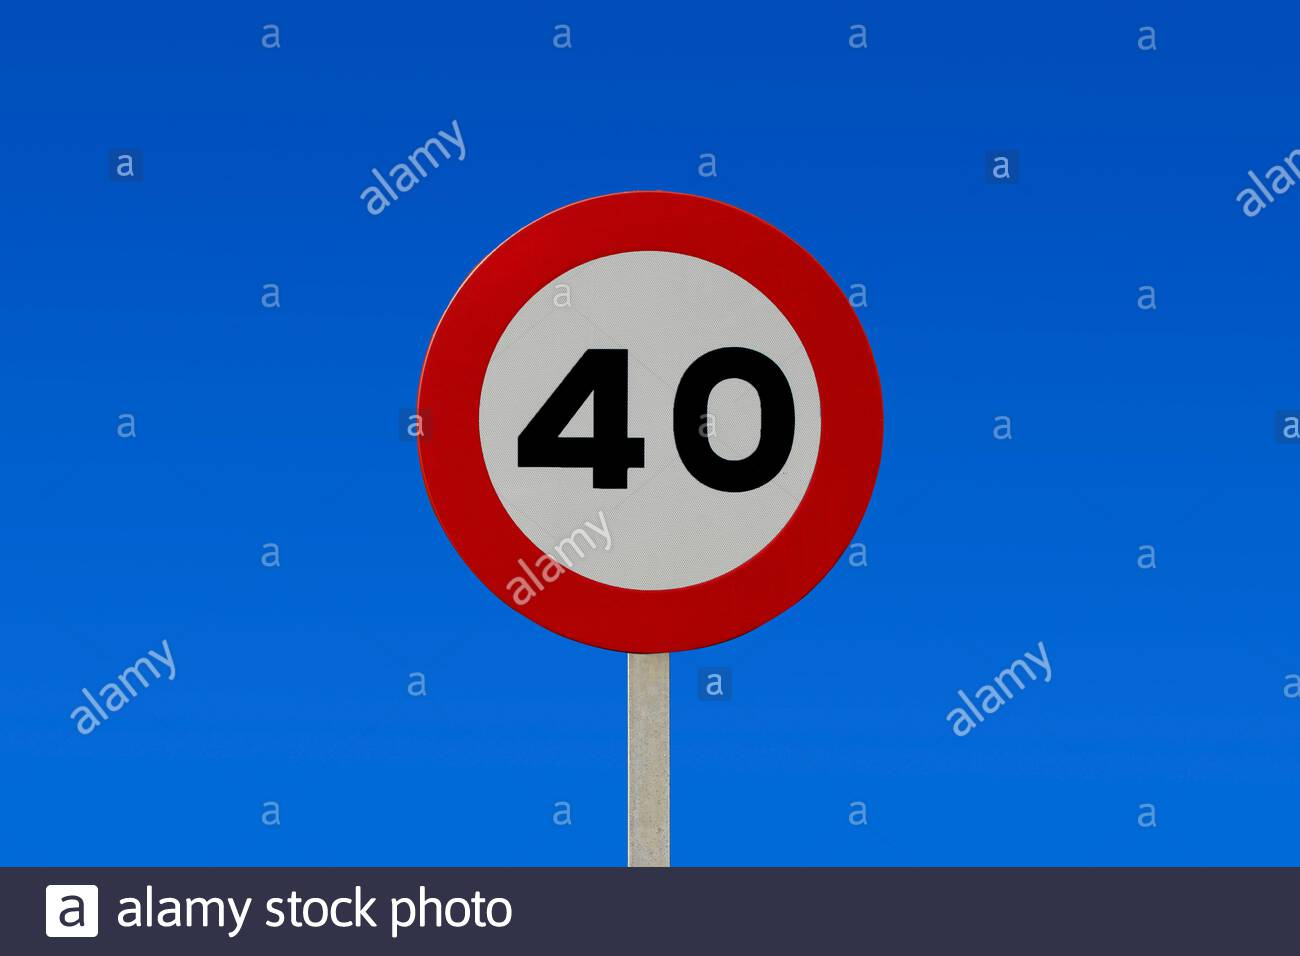 Traffic signs against blue sky - 40km / h speed limit sign with a blue sky in the background Stock Photo